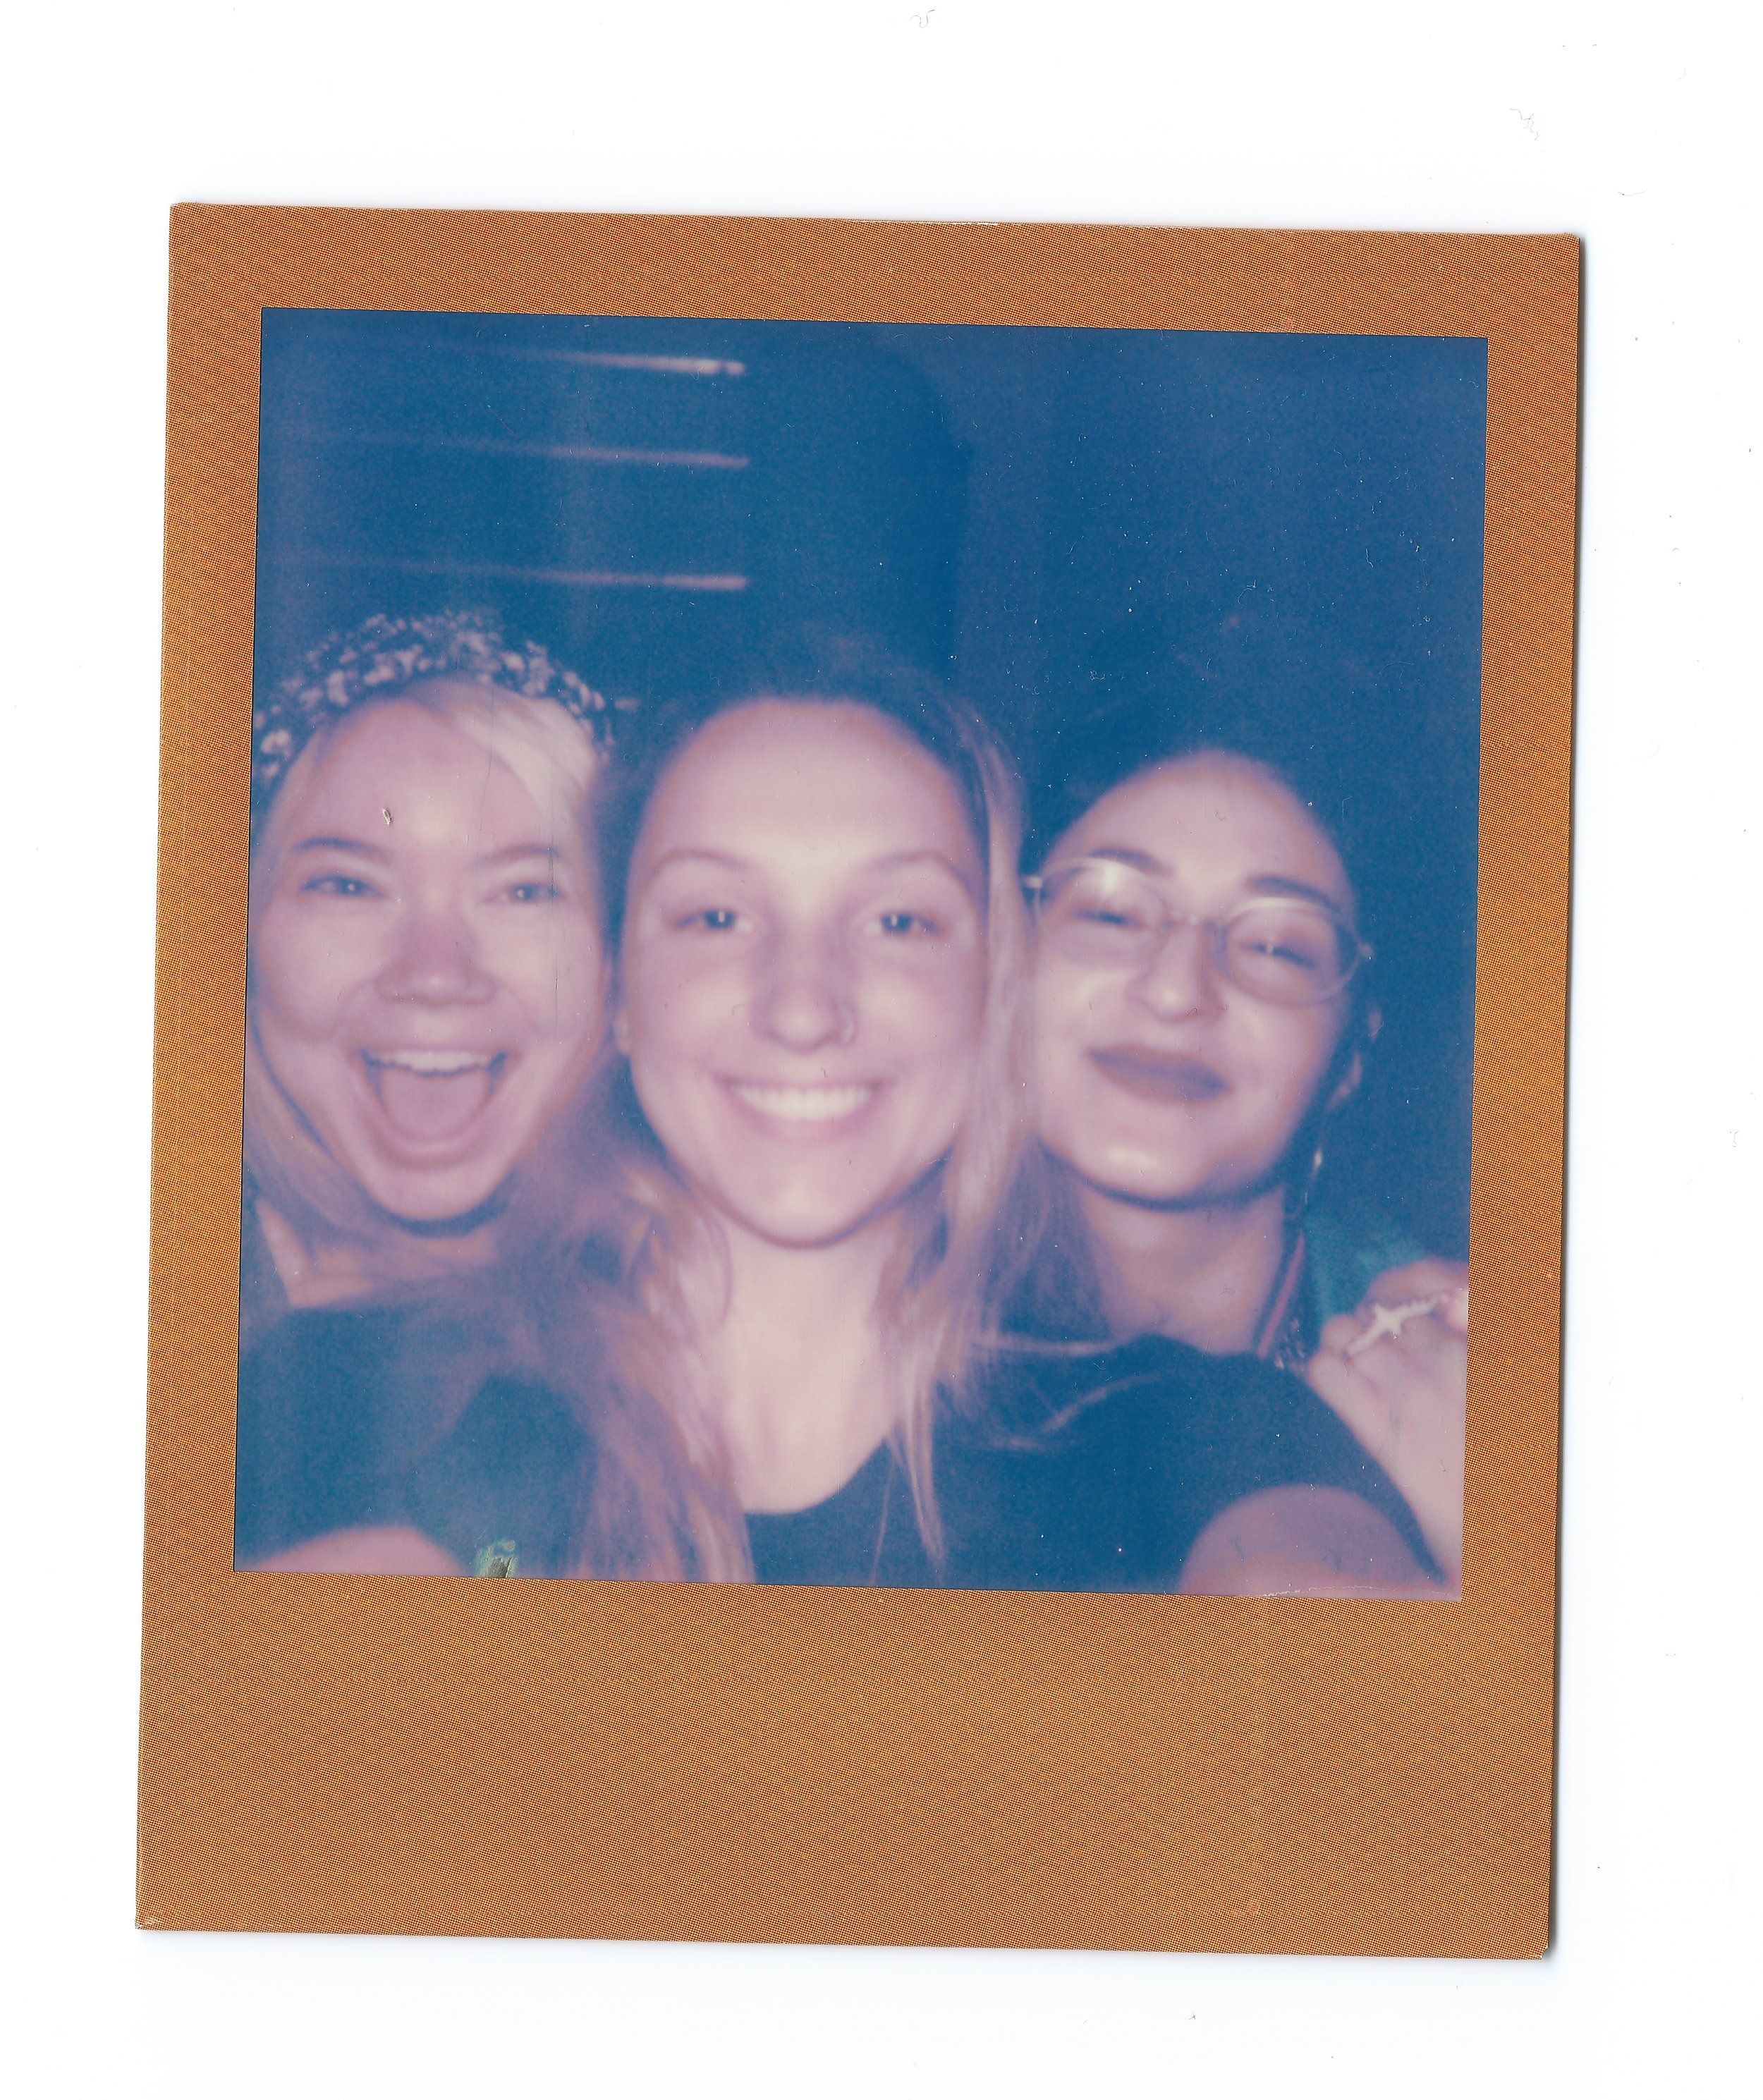 Rachel Turley, Zoe Kraft, and Skela (Left to Right)